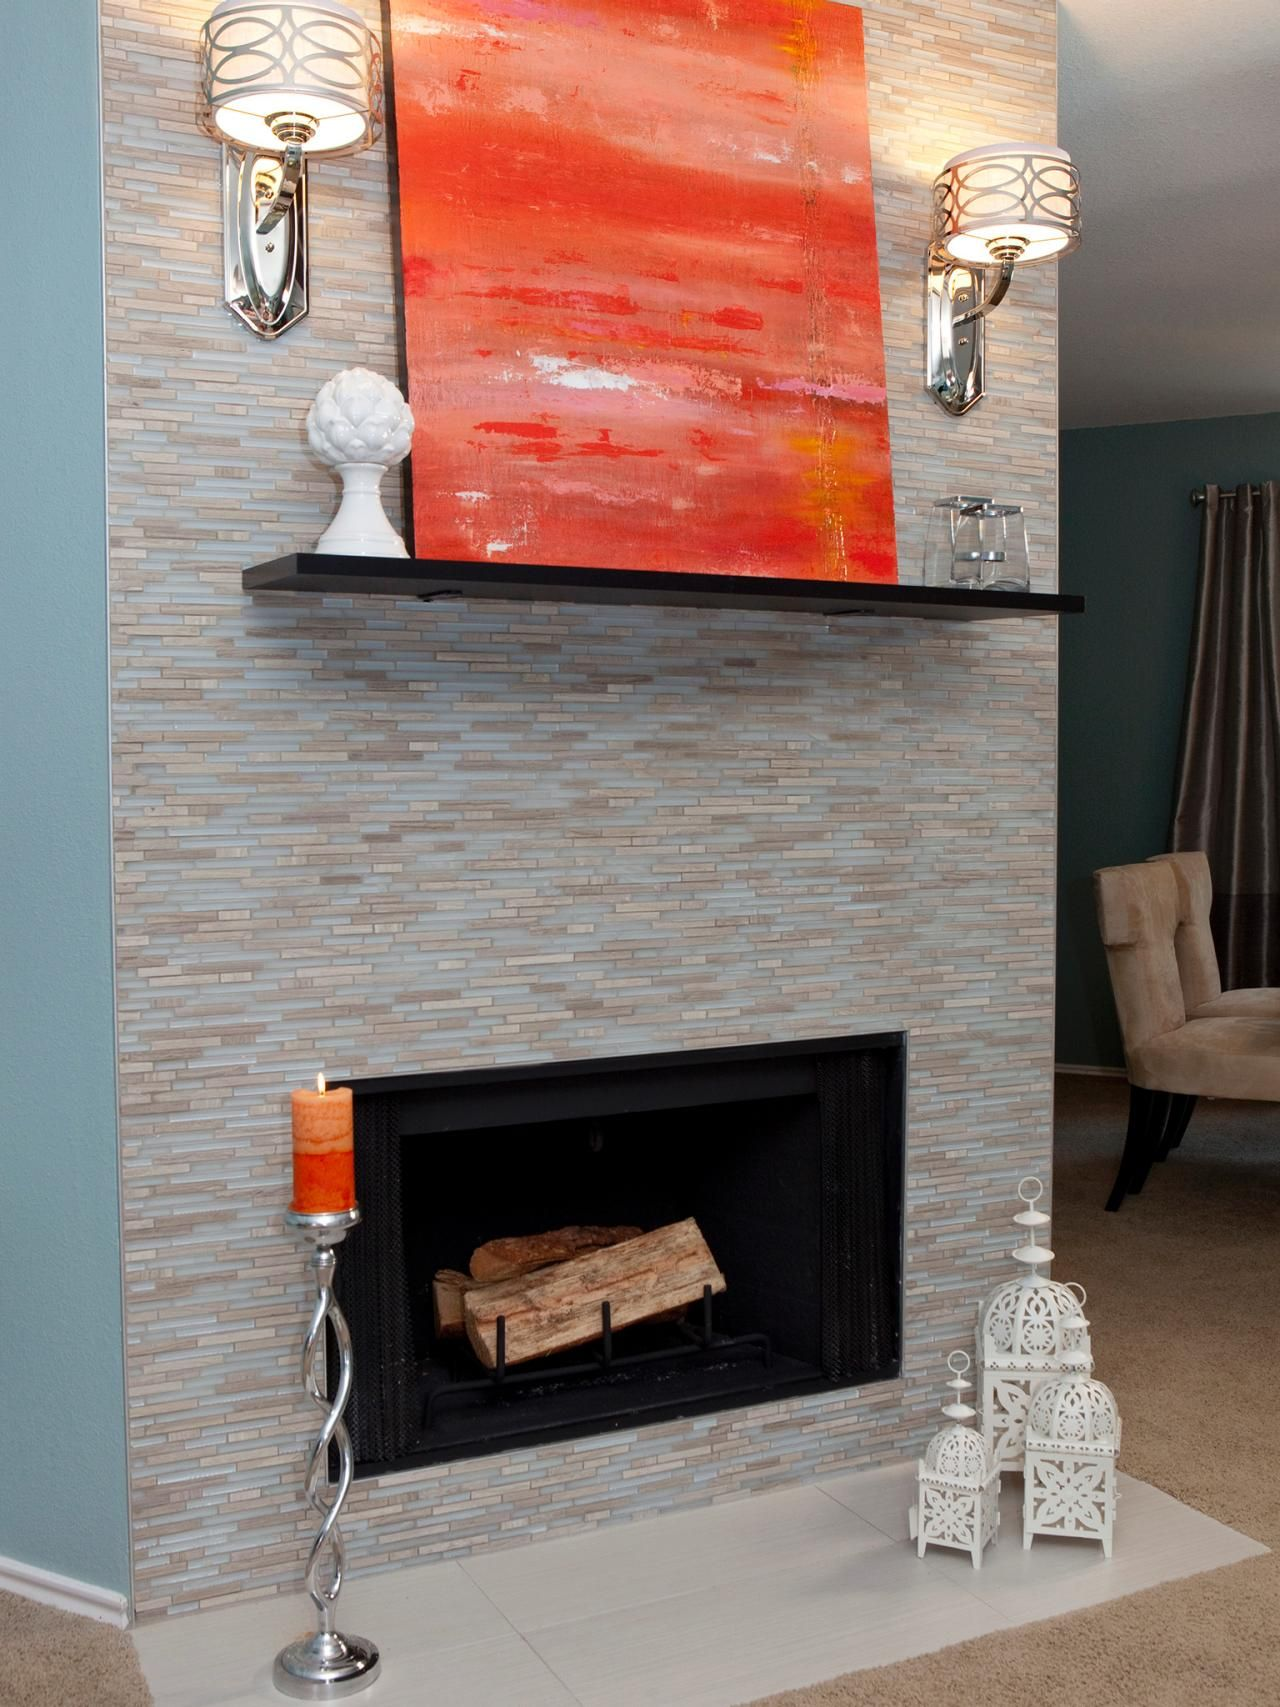 This blue and neutral mosaic tile fireplace is a charming accent to